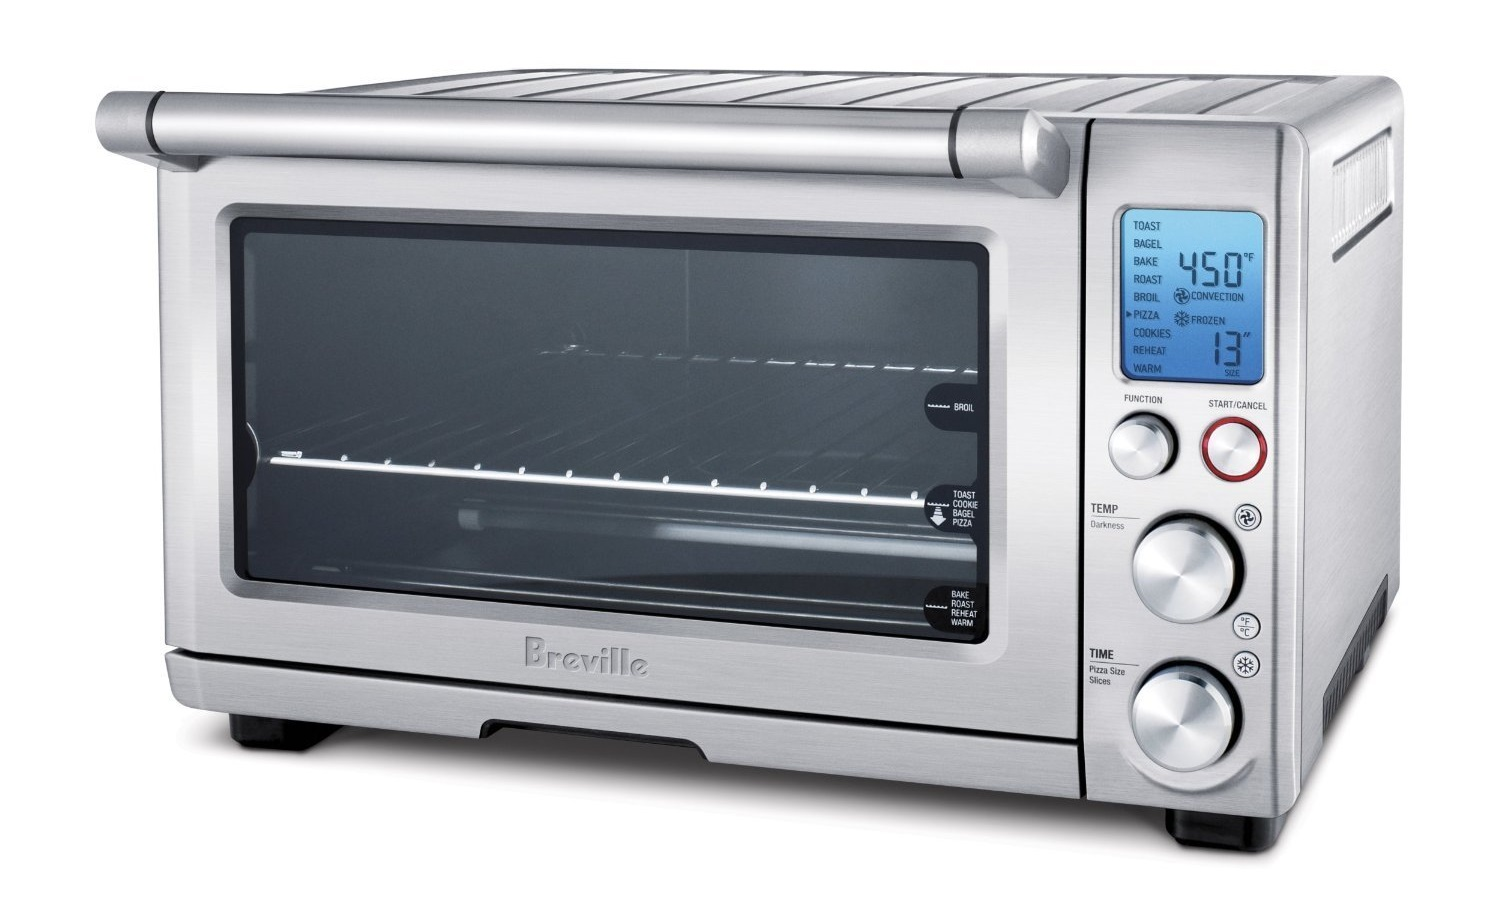 reviews rm one die u intelligent dramatic sunroom slice function pans gratifying oven with smart breville compact ikon cast delight touch toaster